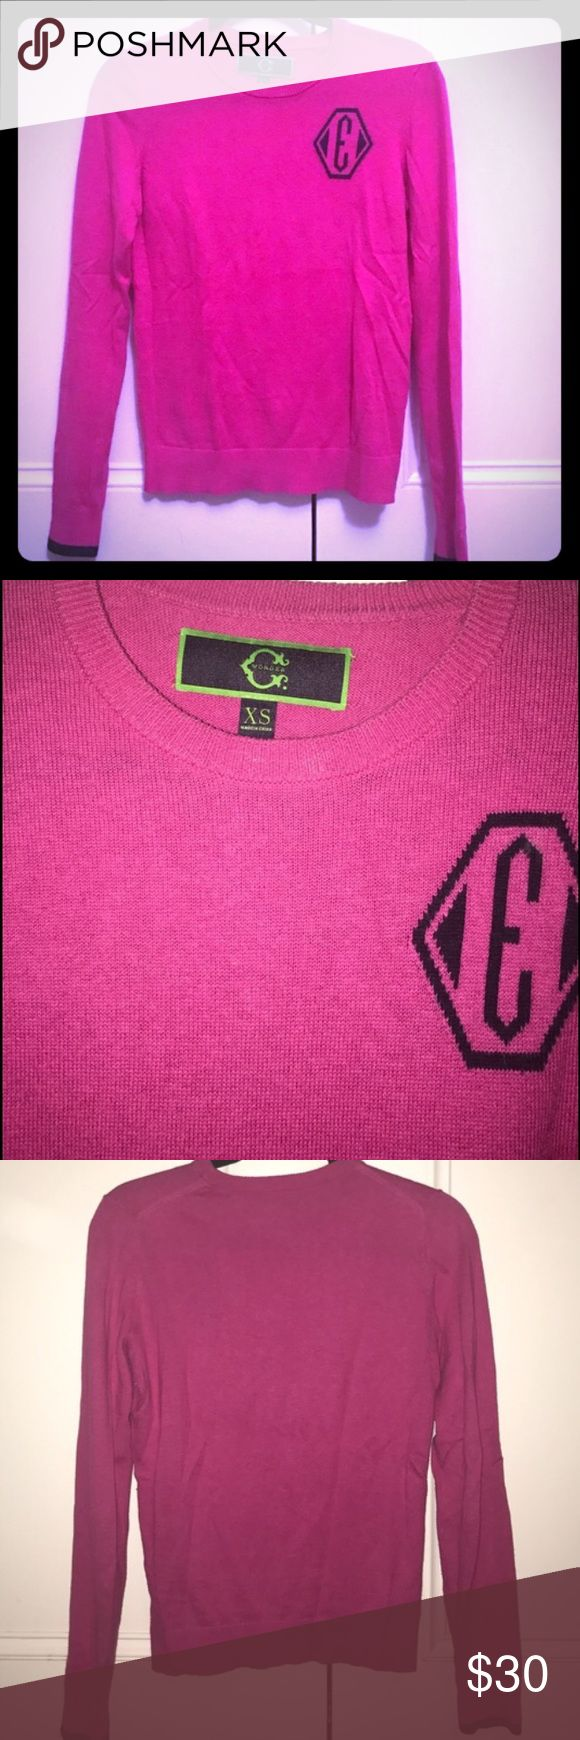 C Wonder pink E crewneck lightweight sweater C. Wonder hot pink crewneck sweater with navy blue E and navy blue trim C. Wonder Sweaters Crew & Scoop Necks